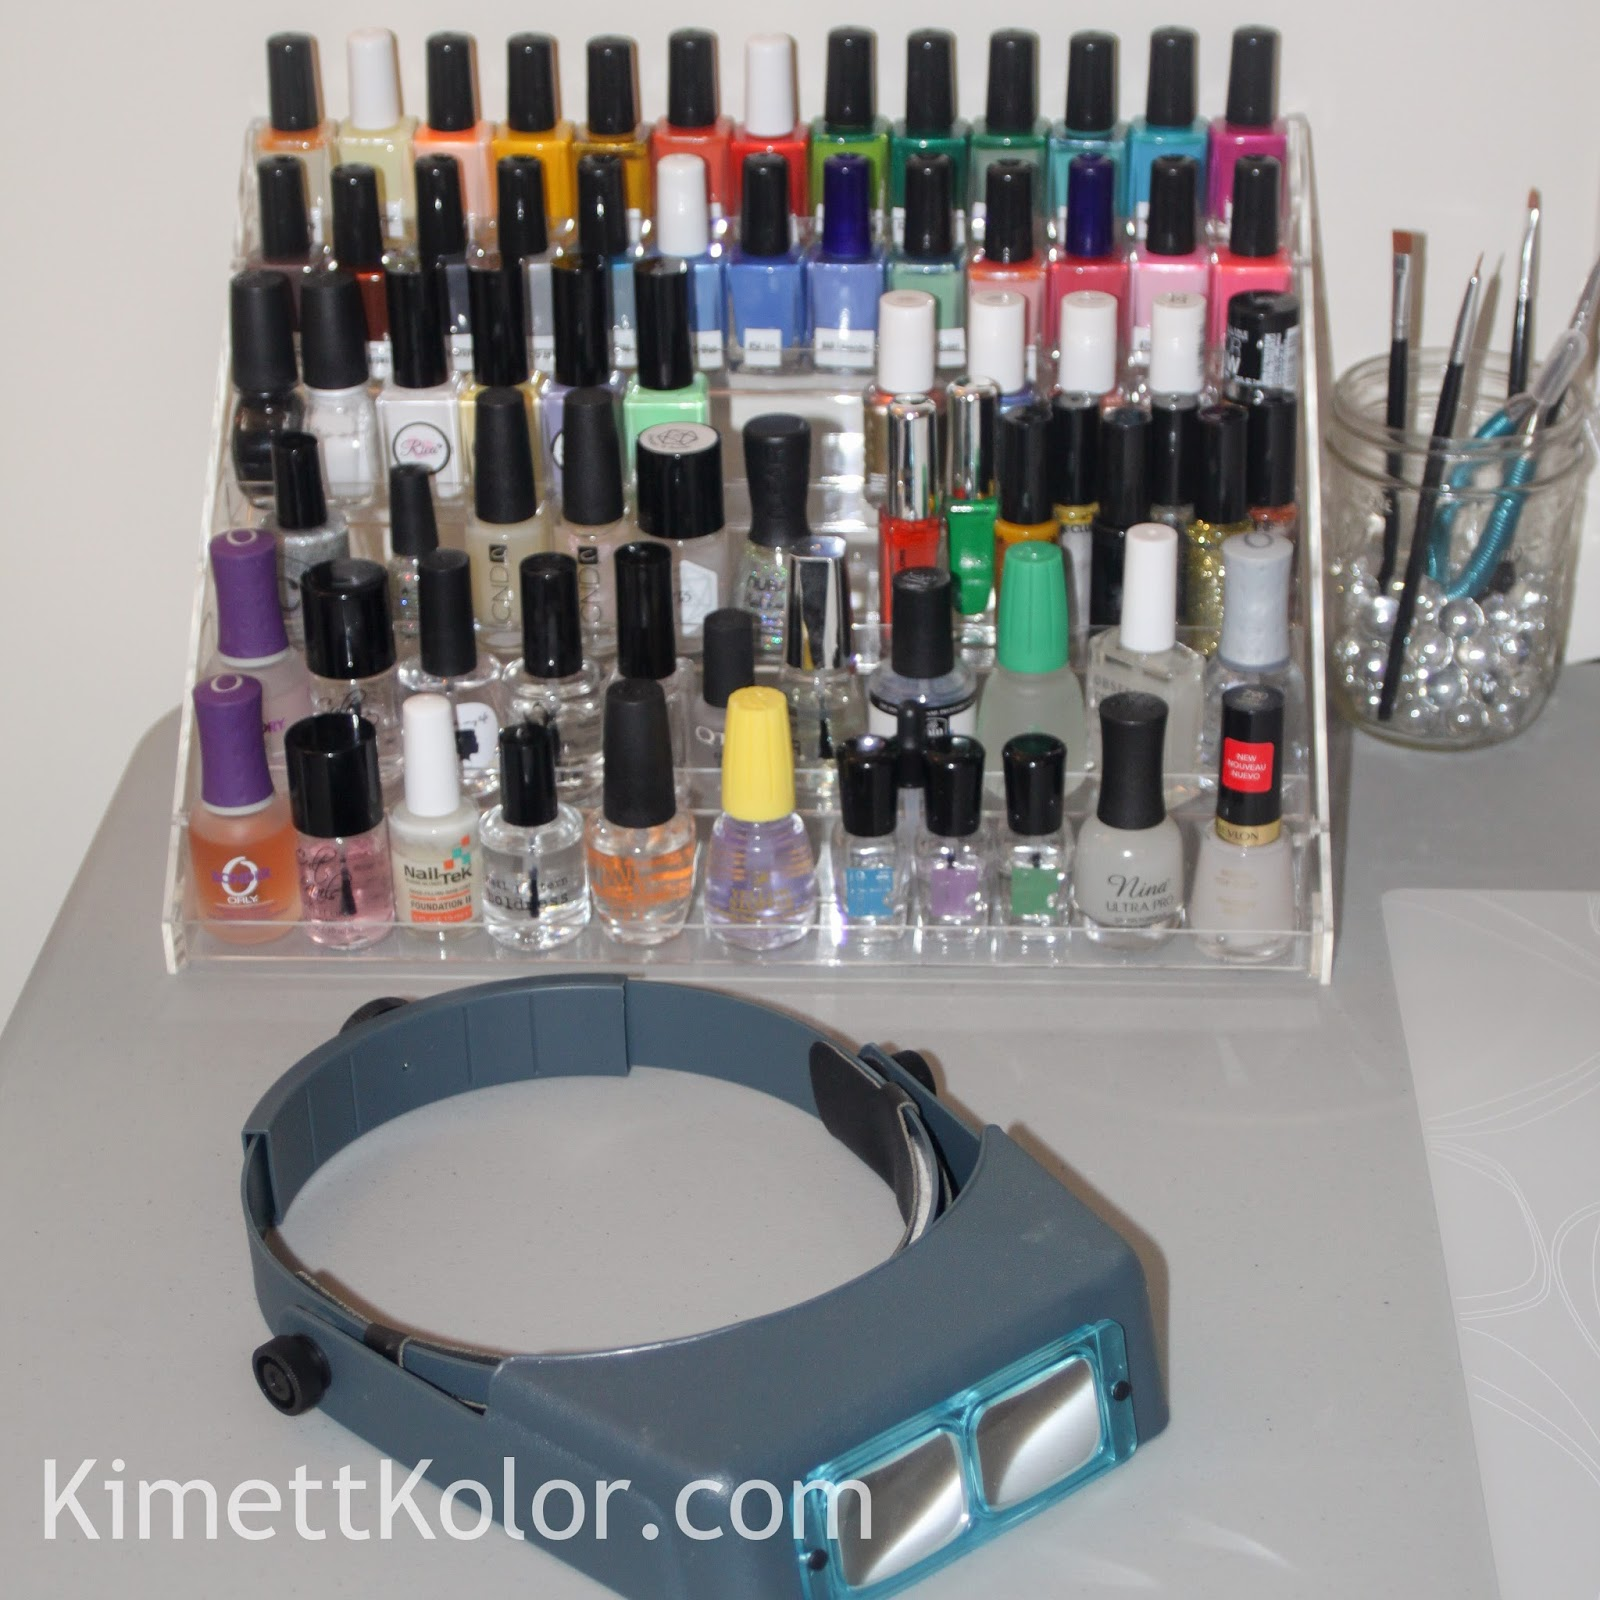 Kimett Kolor\'s Nail Art Station and Polish Organization of Regular ...